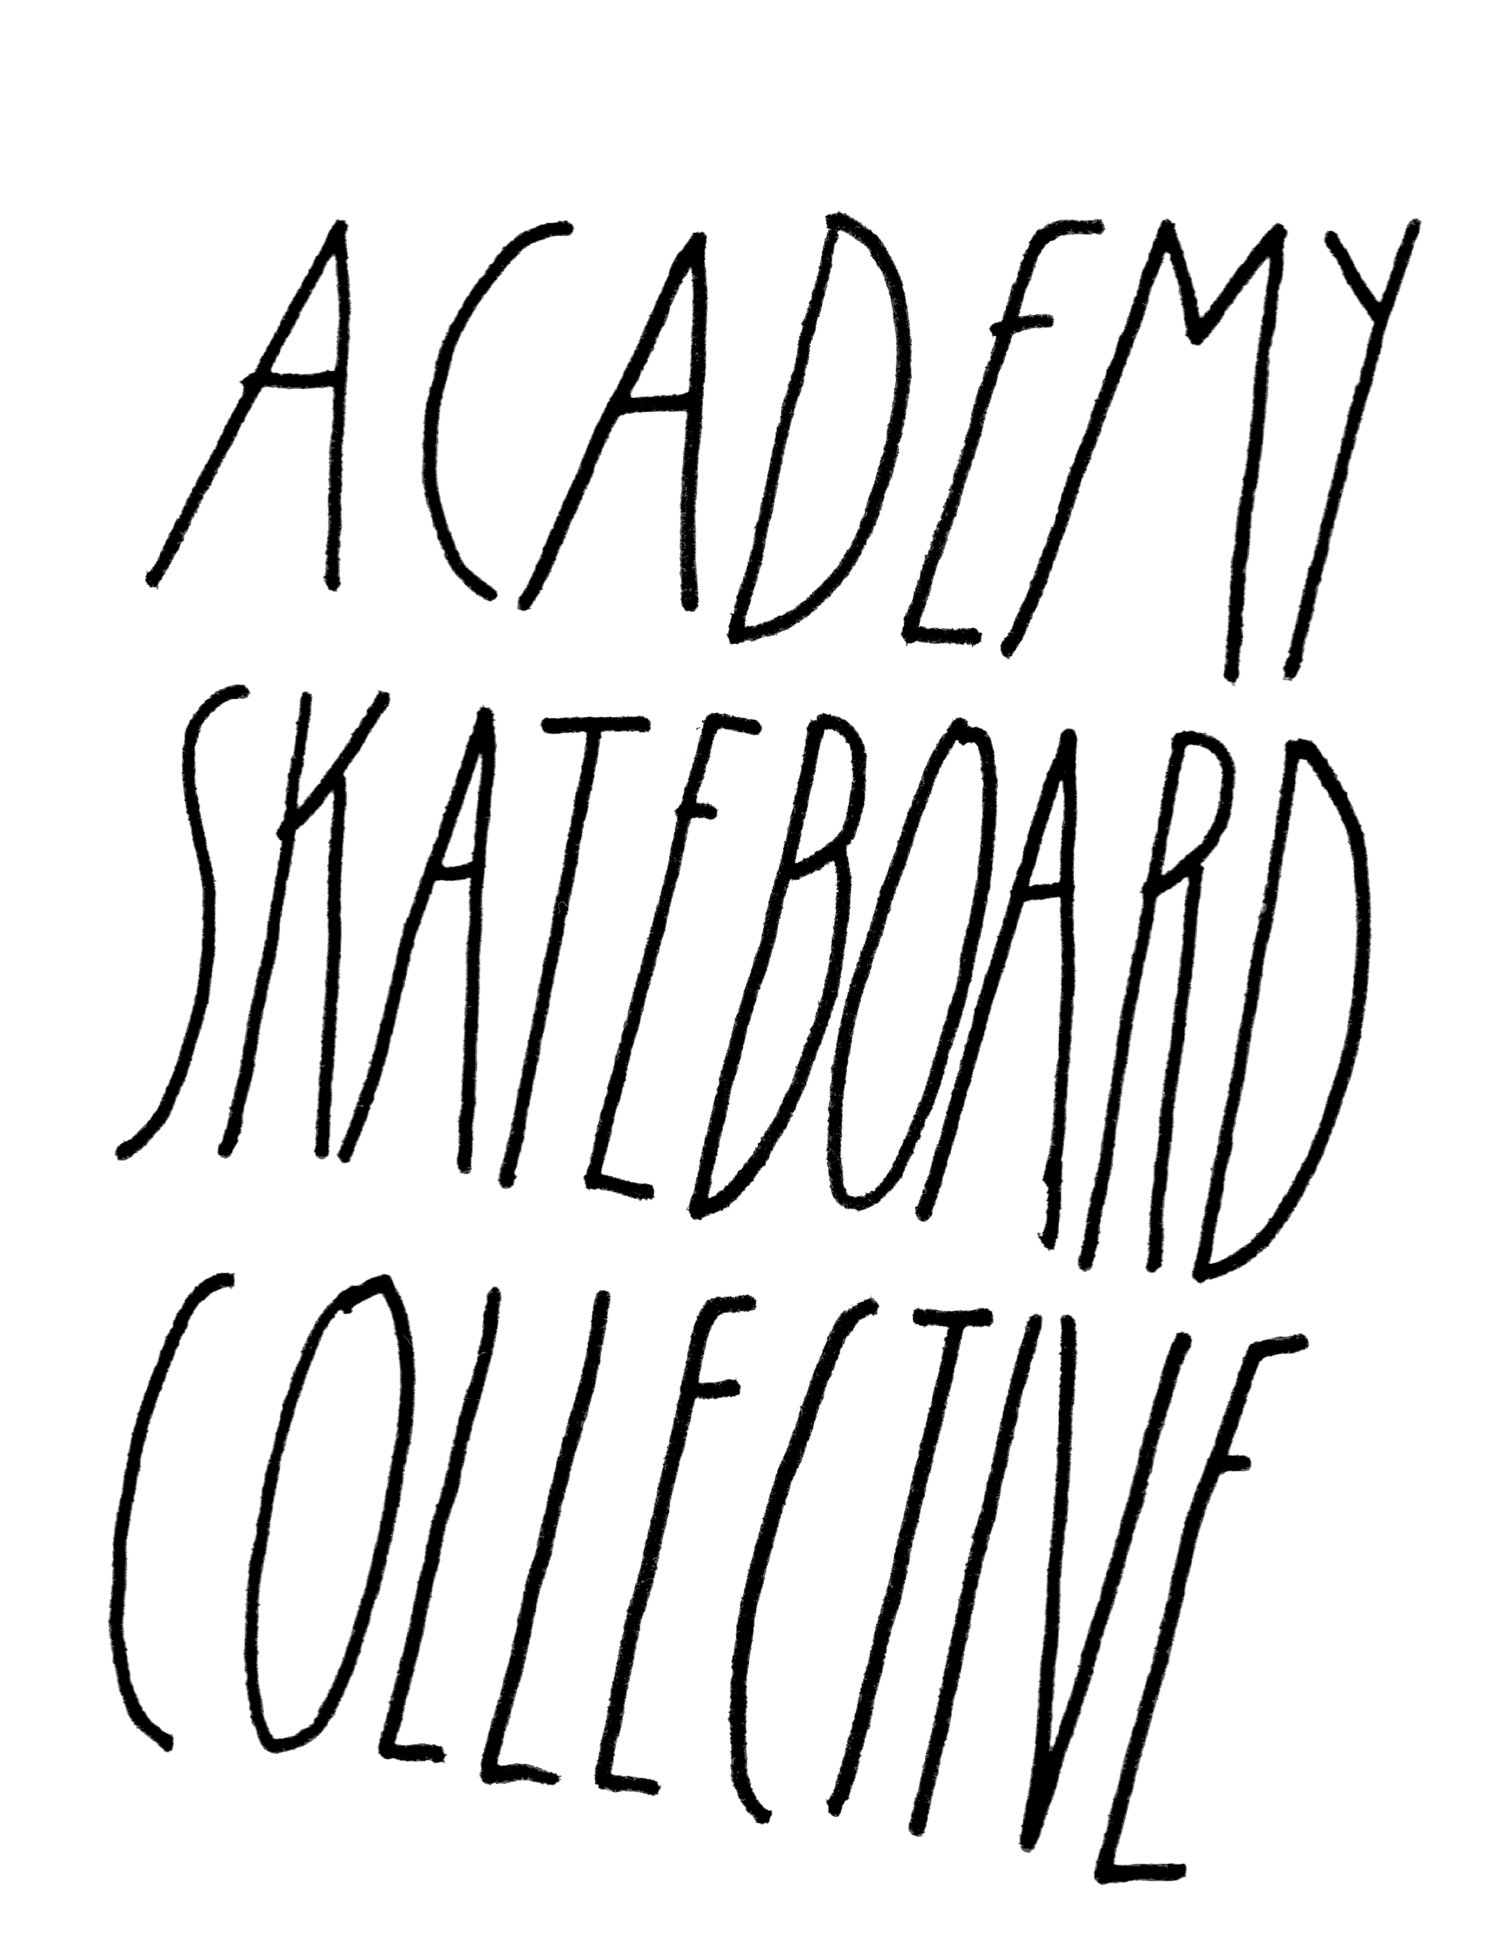 ACADEMY SKATEBOARD COLLECTIVE